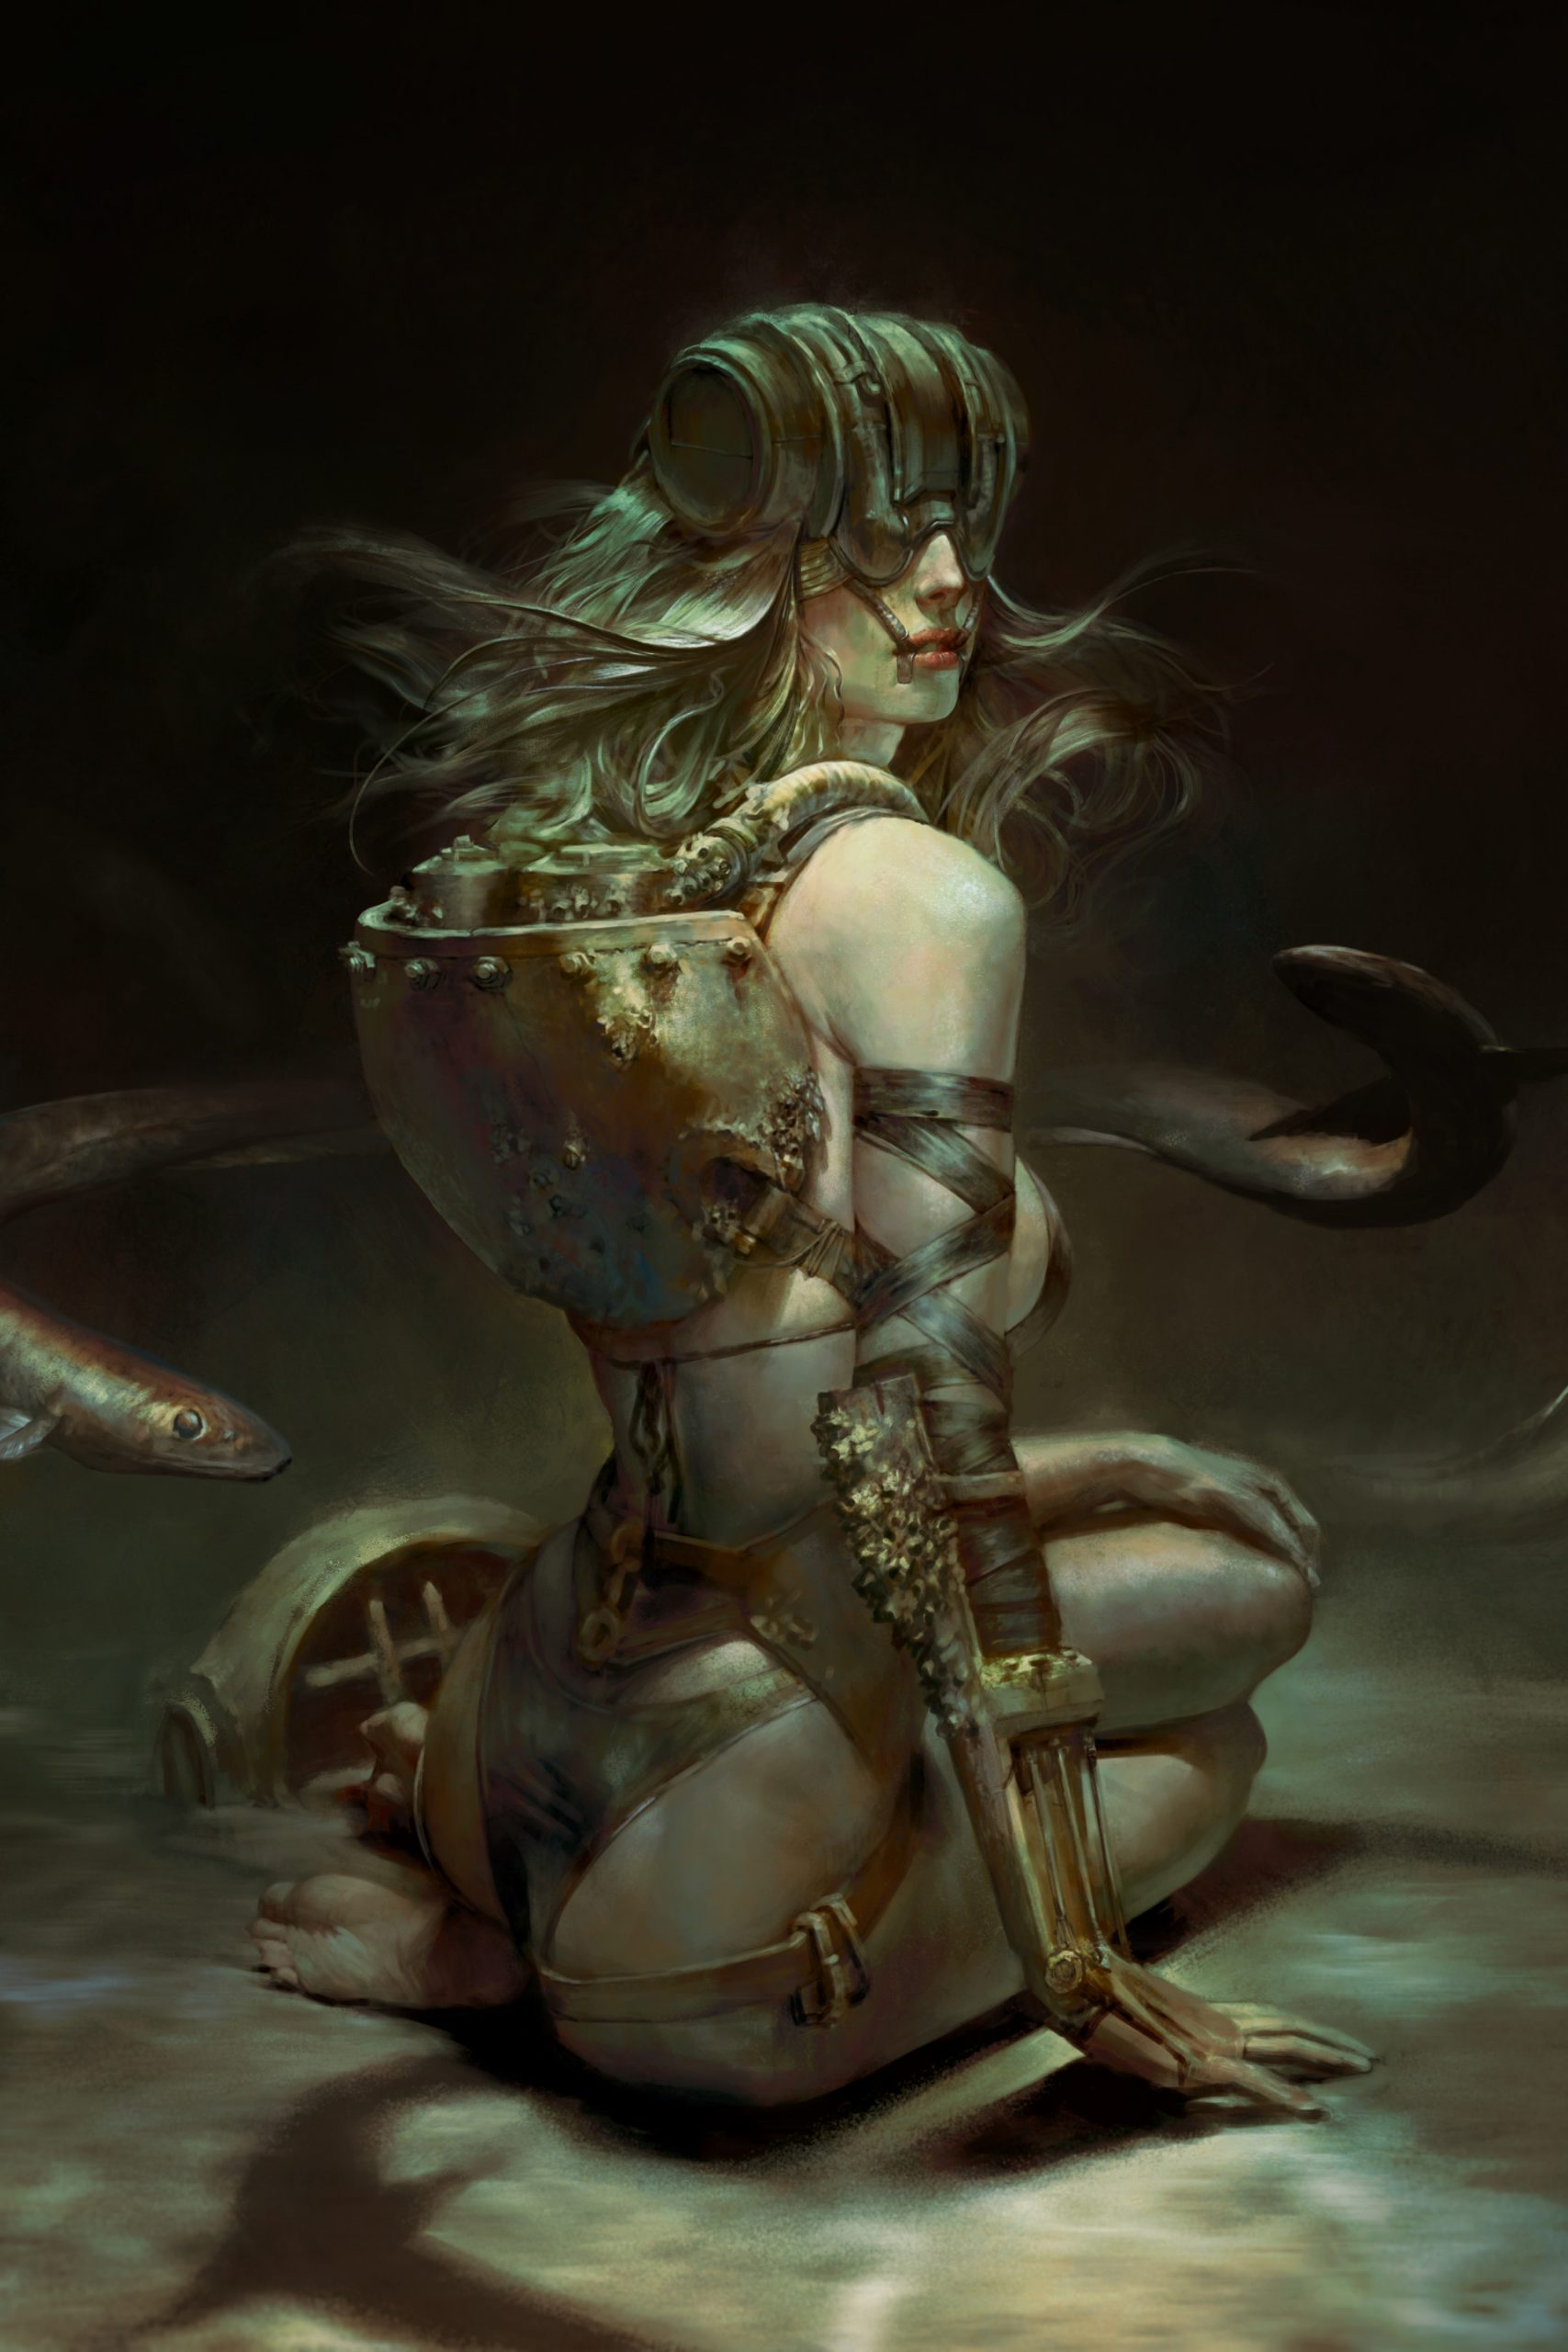 The Stunning Sci-Fi Character Art of Christophe Young